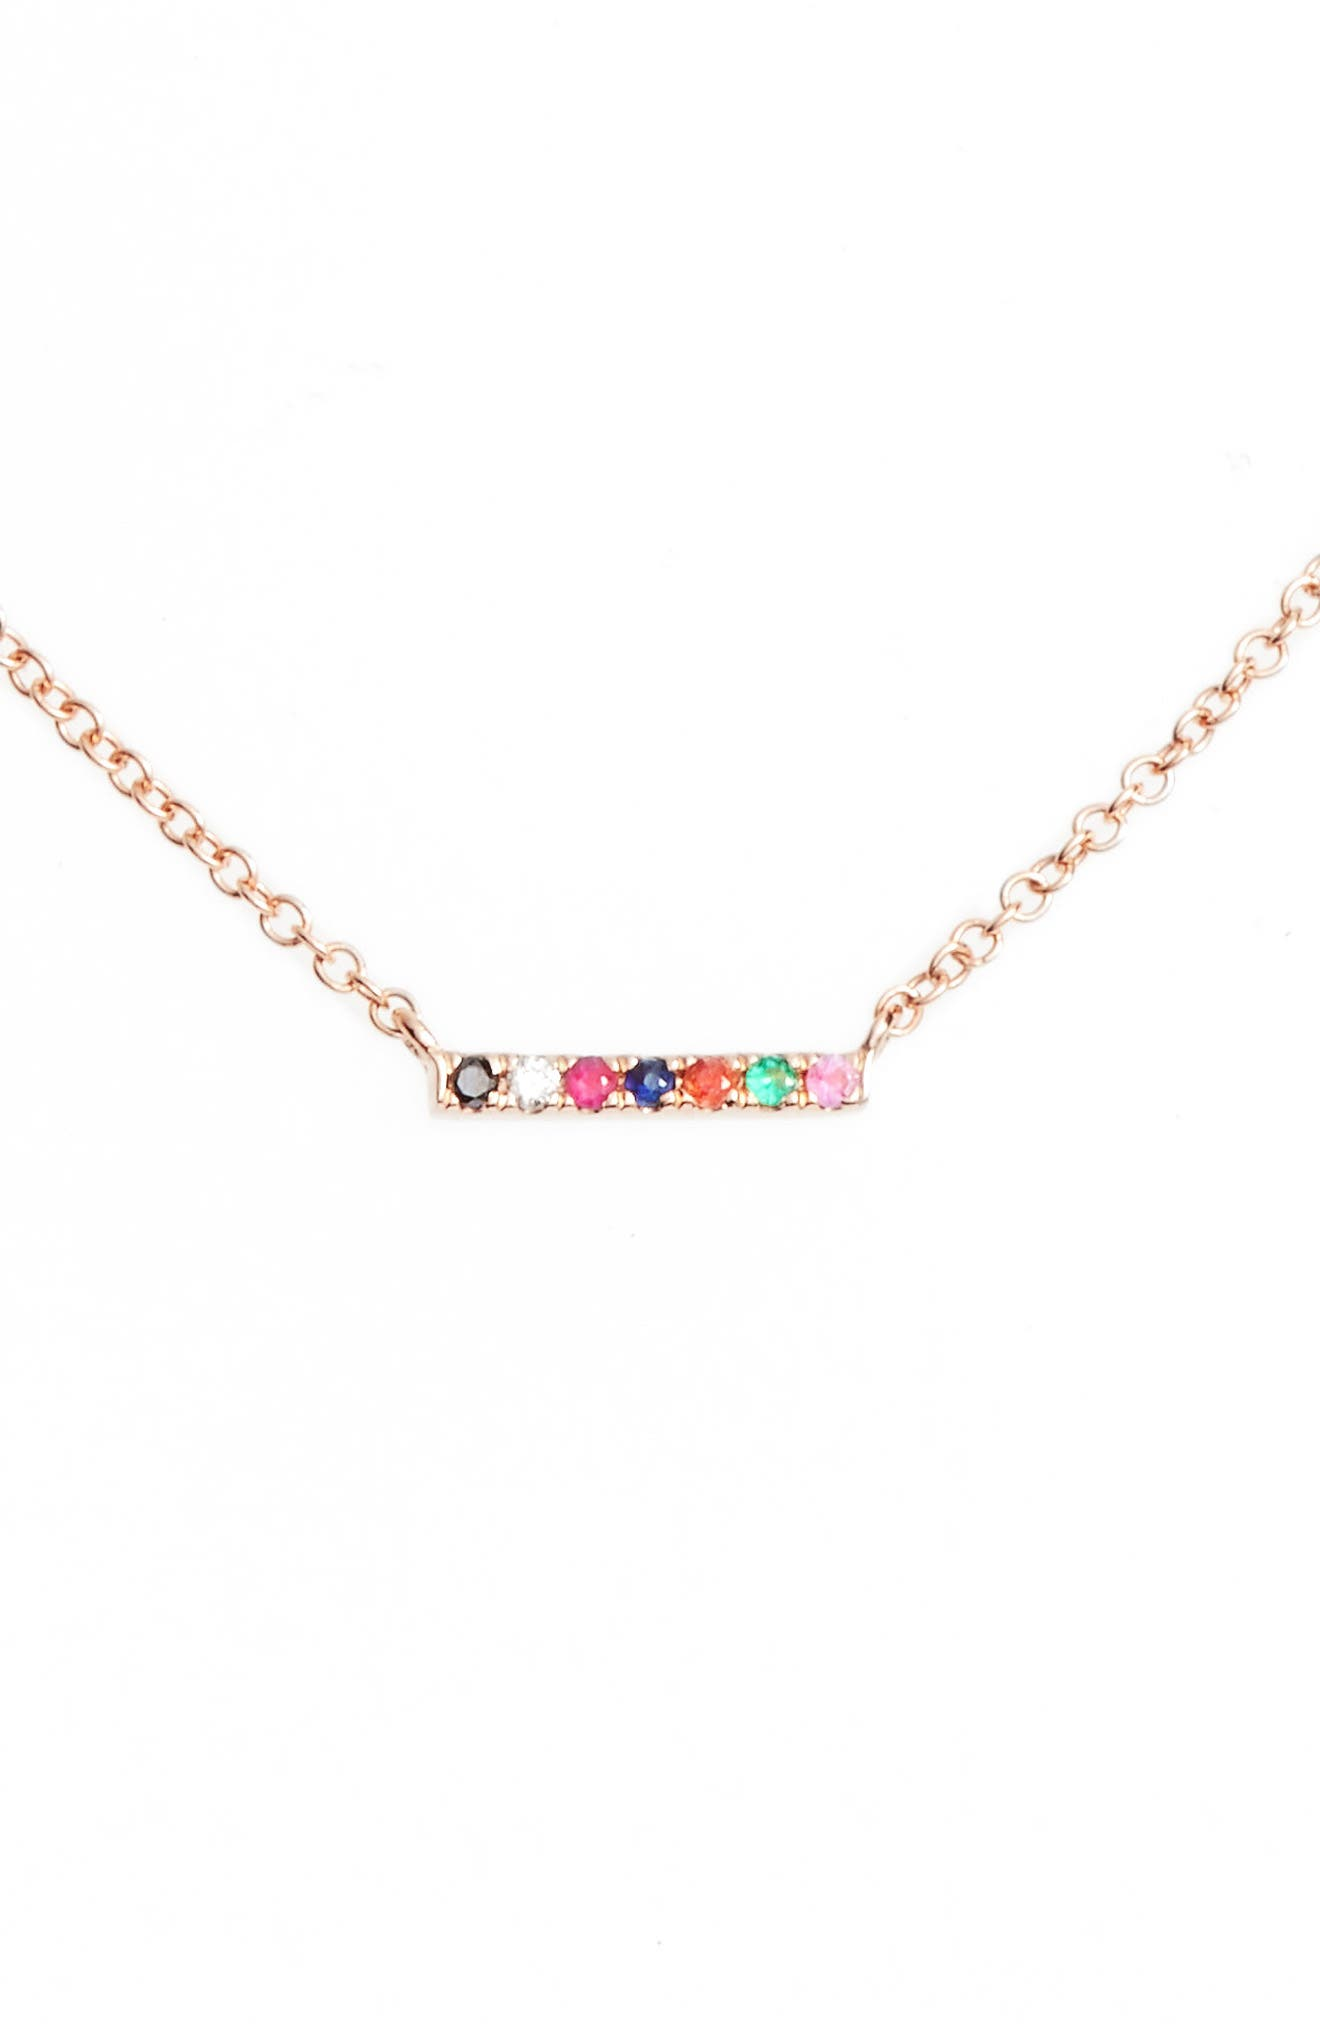 Mini Bar Rainbow Necklace,                         Main,                         color, Rose Gold